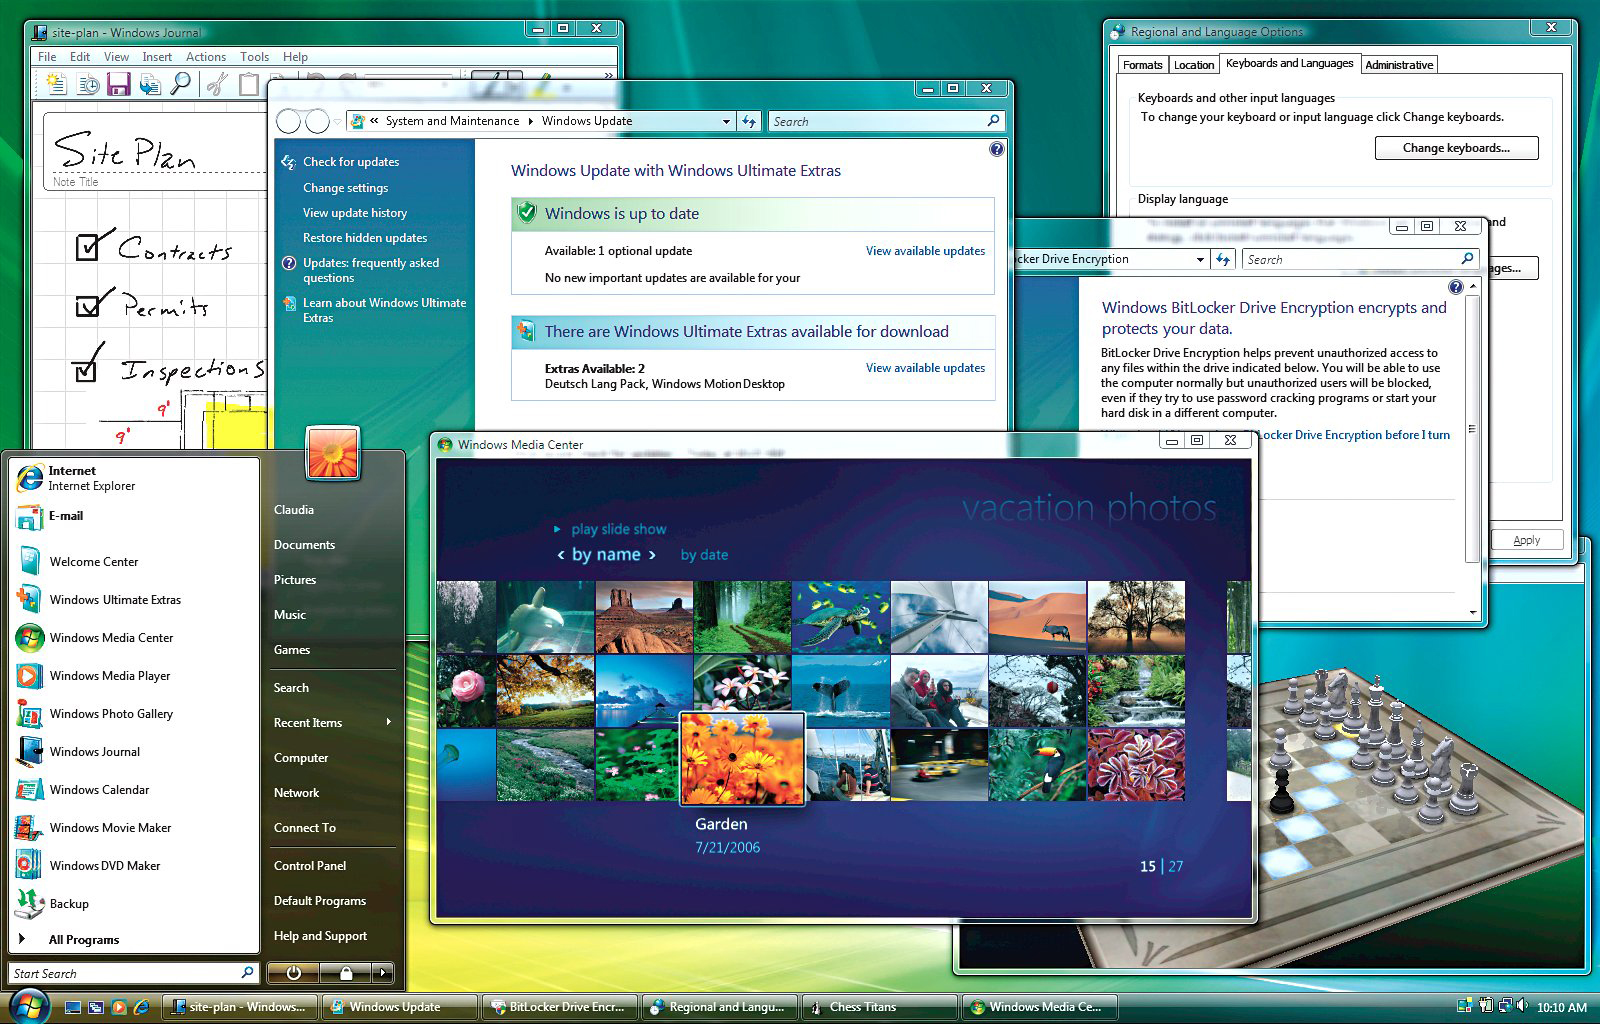 Windows Vista Ultimate desktop